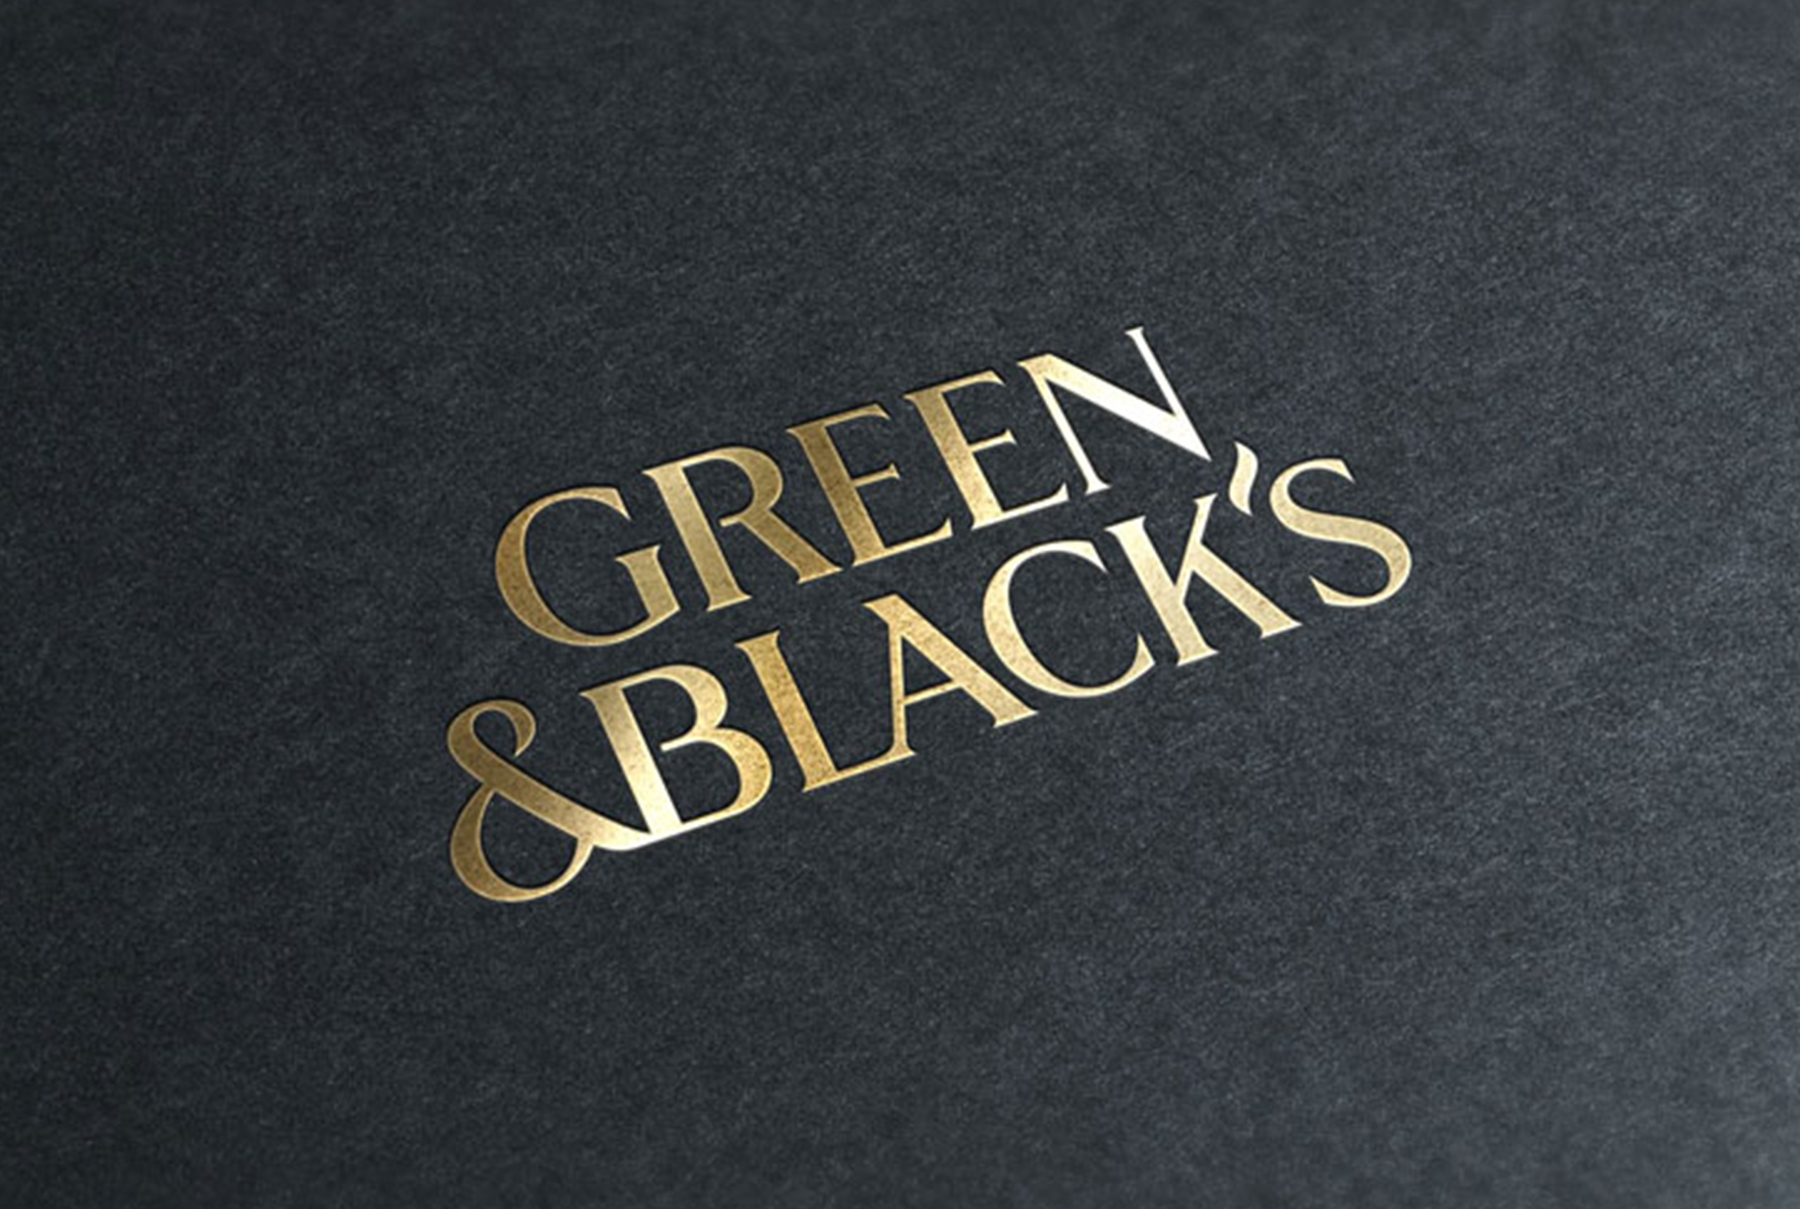 Green and Blacks unveils a brand new range the first in 26